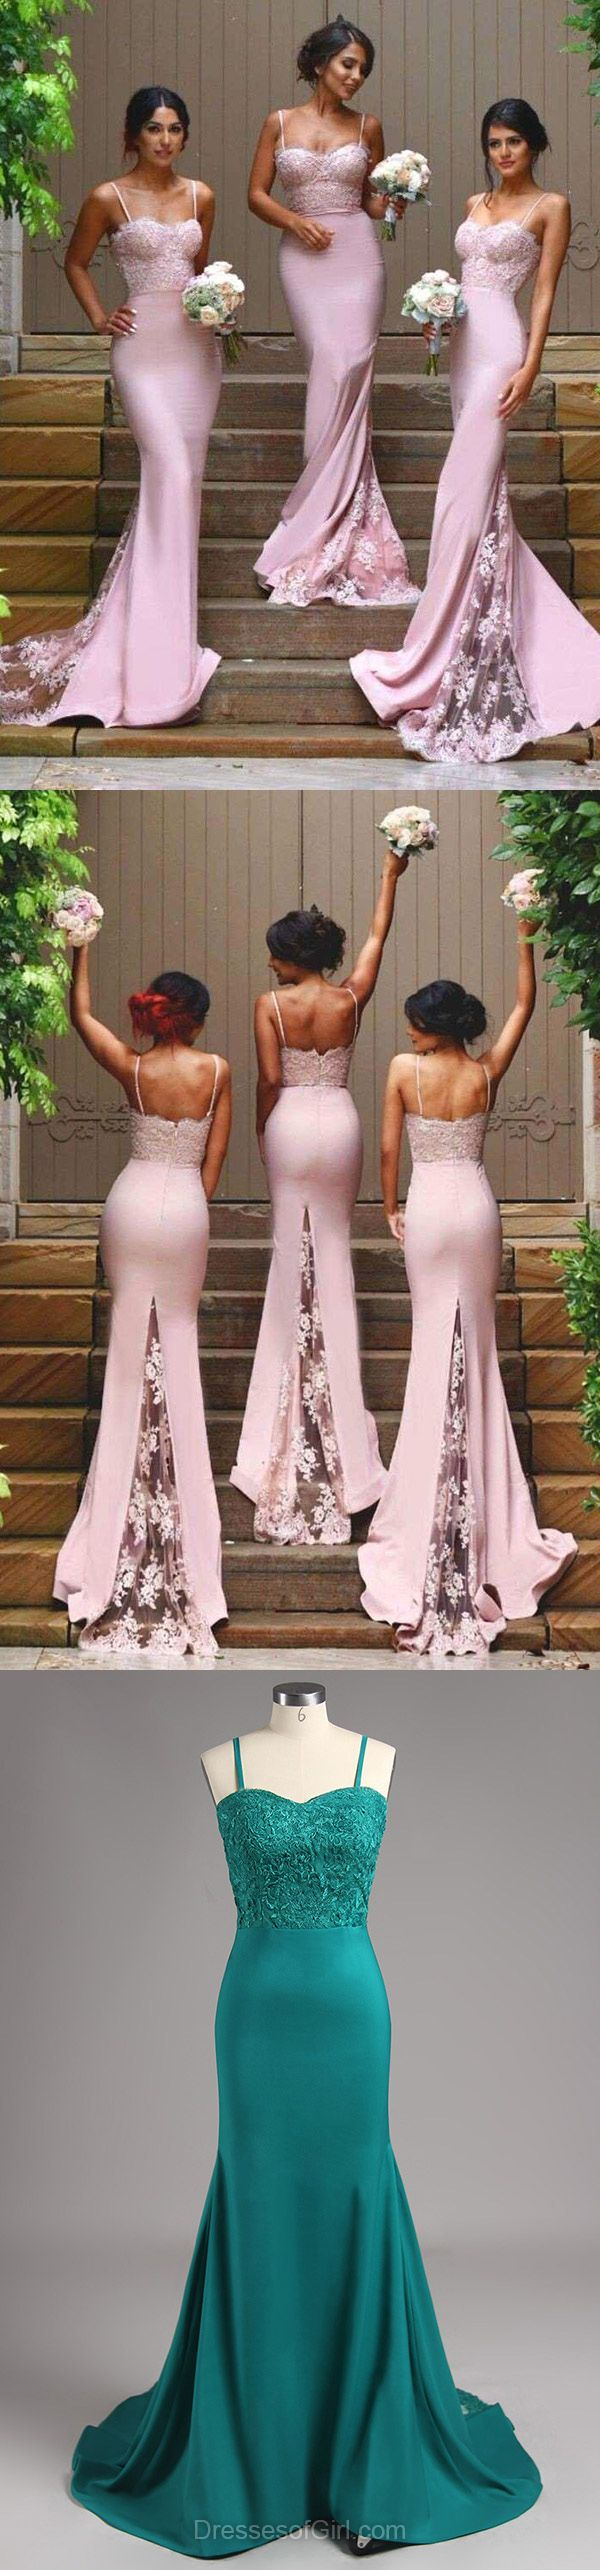 Pink prom dress long prom dresses sexy evening gowns mermaid